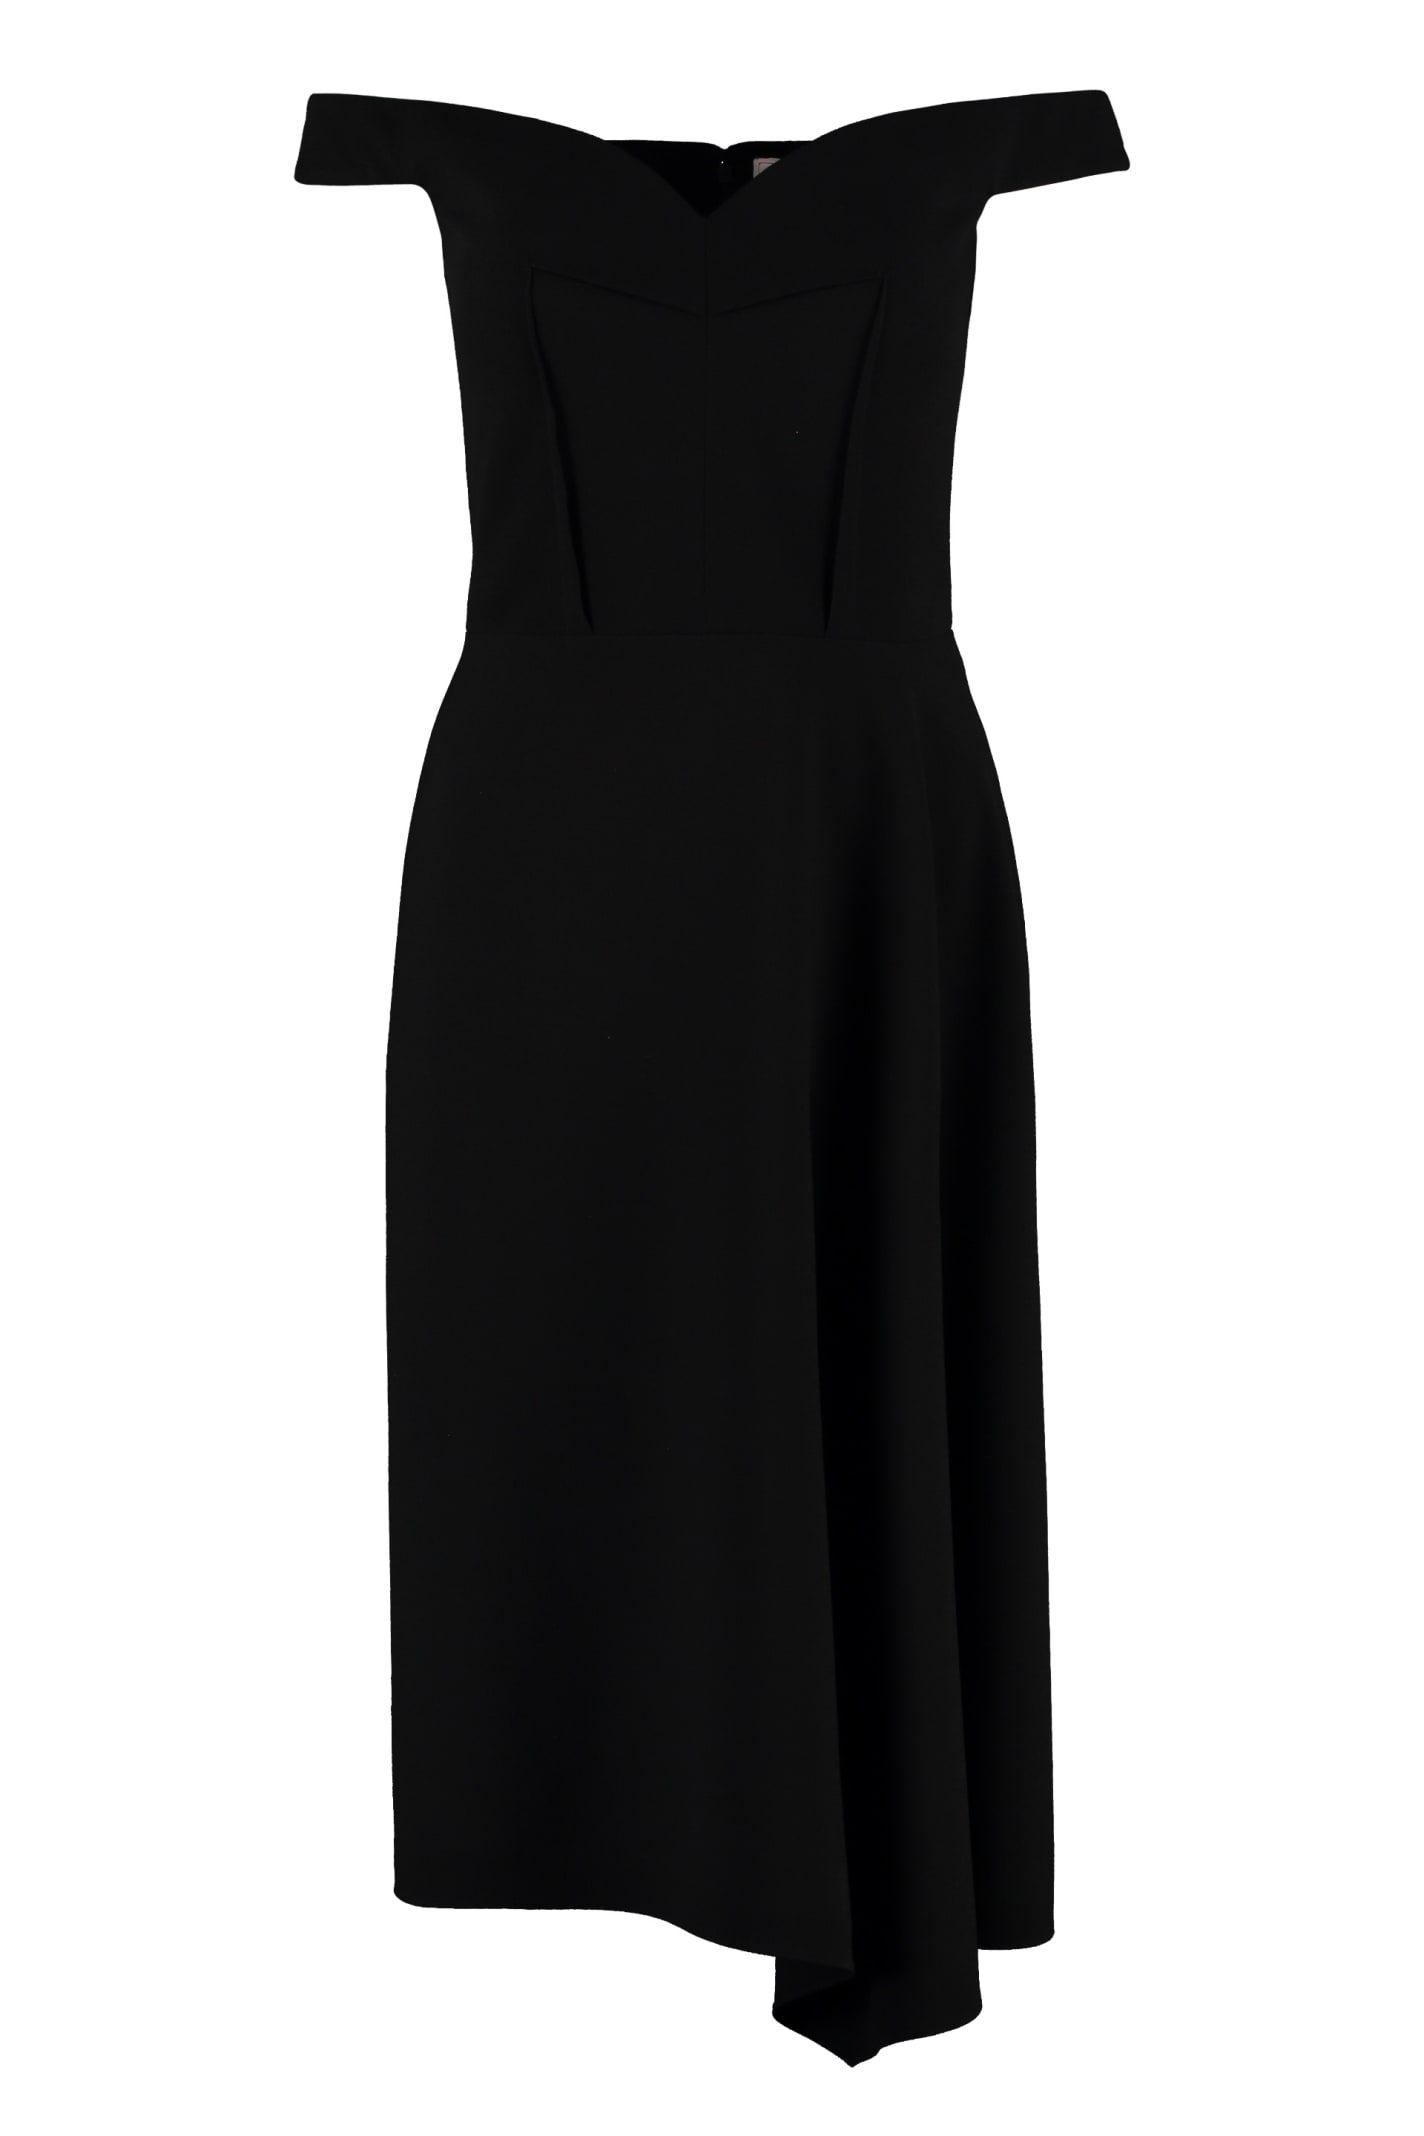 Alexander McQueen Wool Crepe Dress